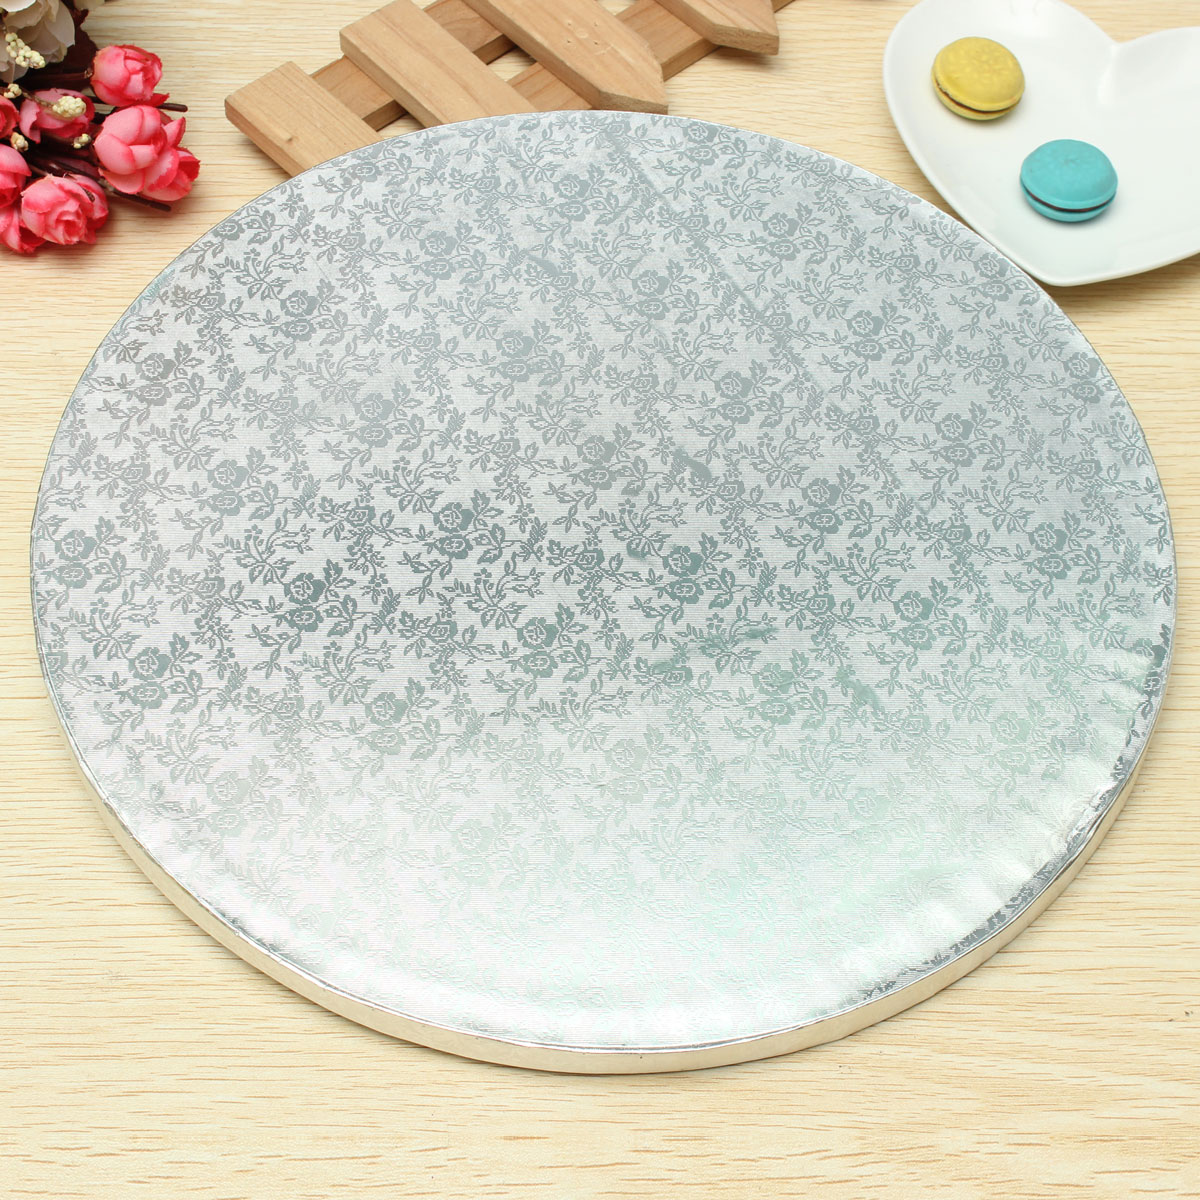 Inch Thick Cake Boards